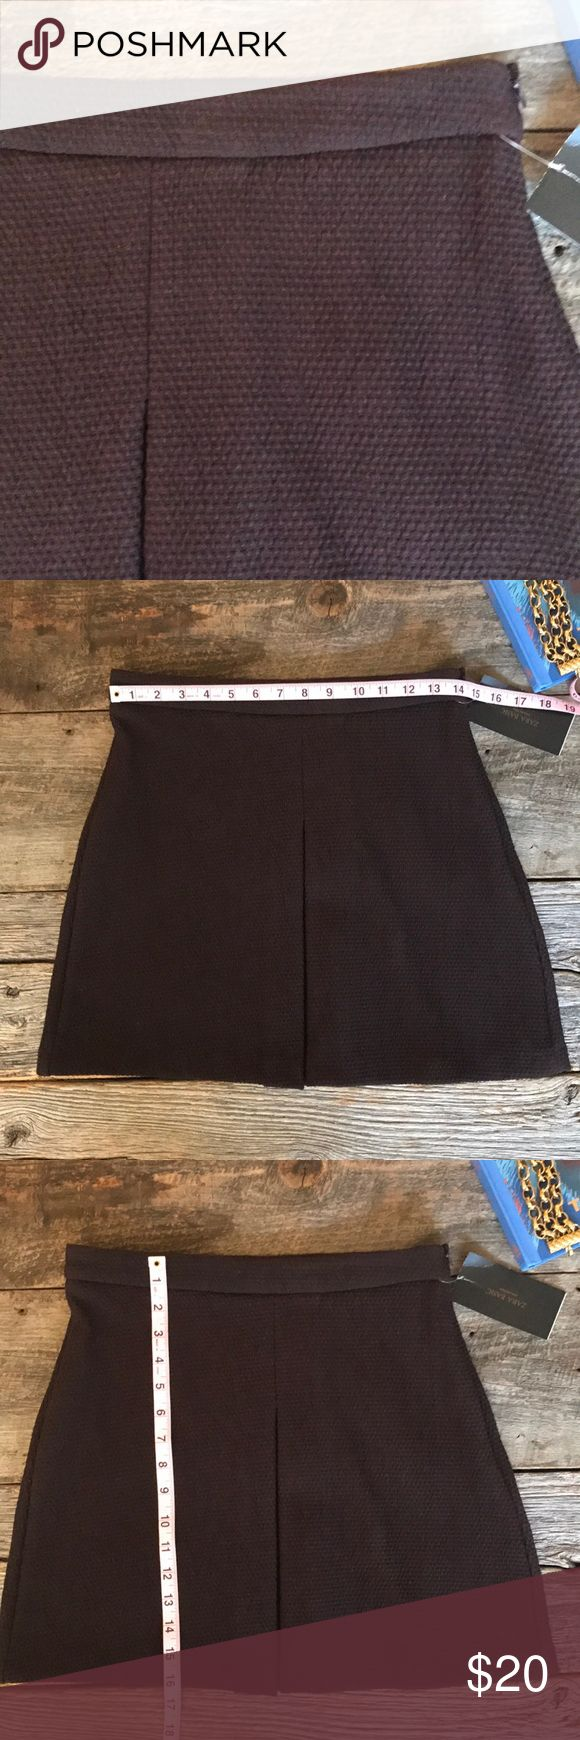 || Zara || Front Panel Brown Skirt From Zara Basic, this cotton blend front-panelled skirt is in excellent, New with Tags condition. In deep, dark chocolate brown, you can wear this skirt with tops, jackets, and sweaters. Left side zip. Zara Skirts Mini